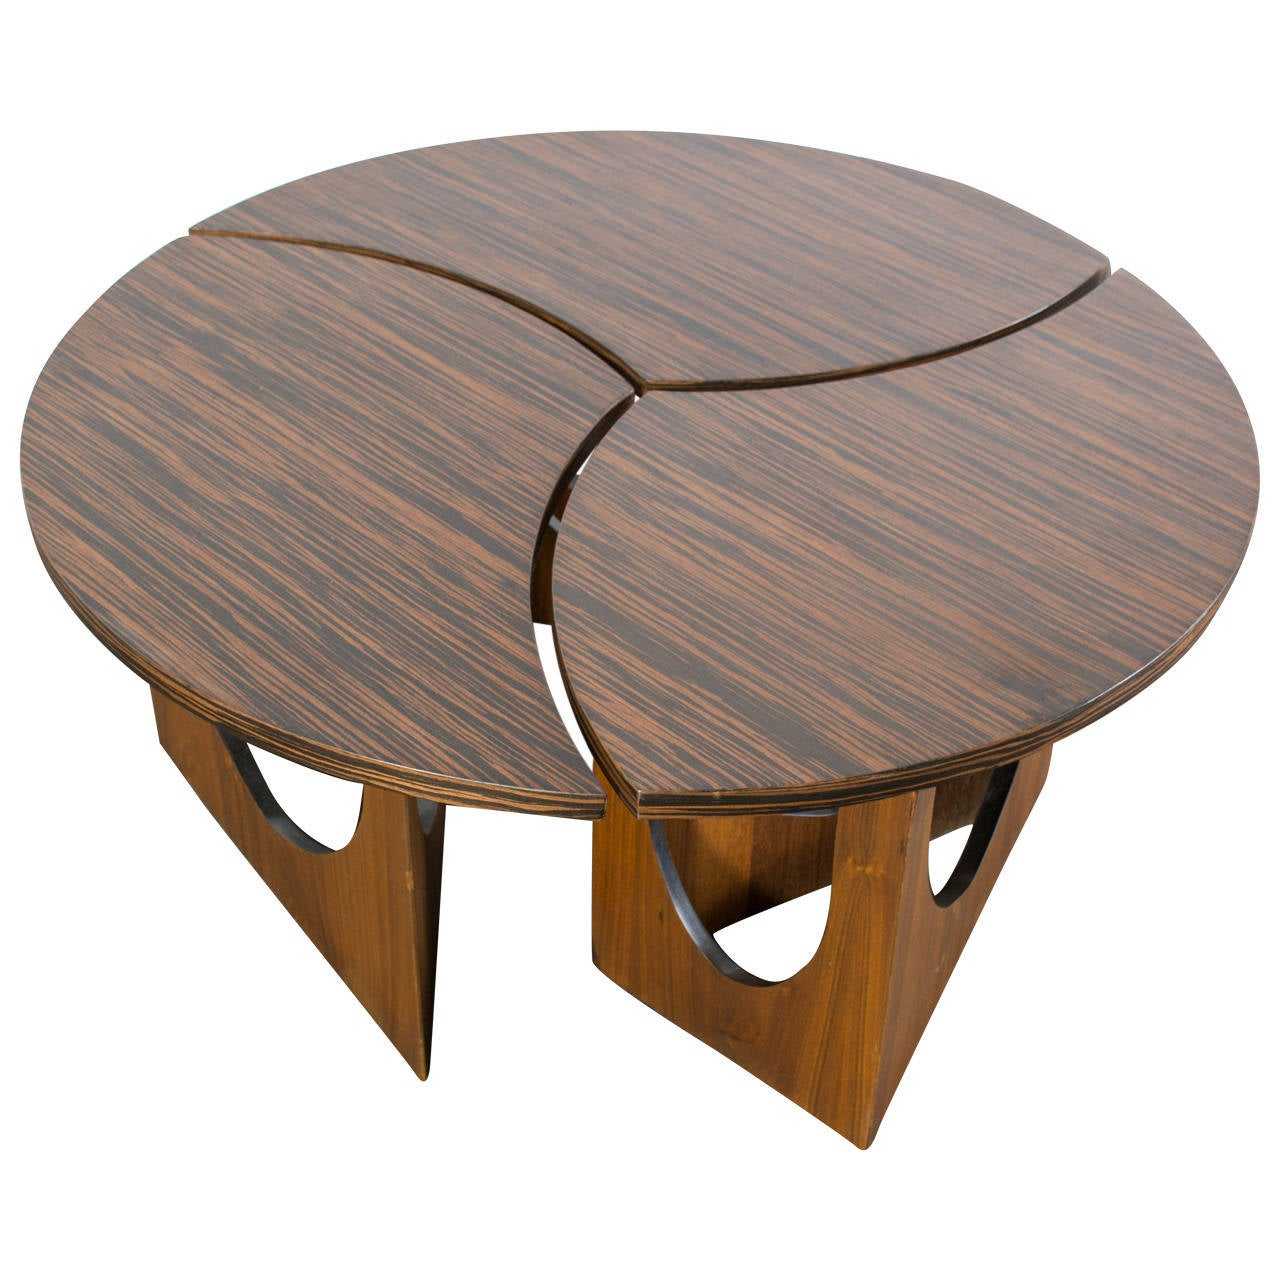 Vintage mid century three piece coffee table at 1stdibs for Coffee tables 3 piece